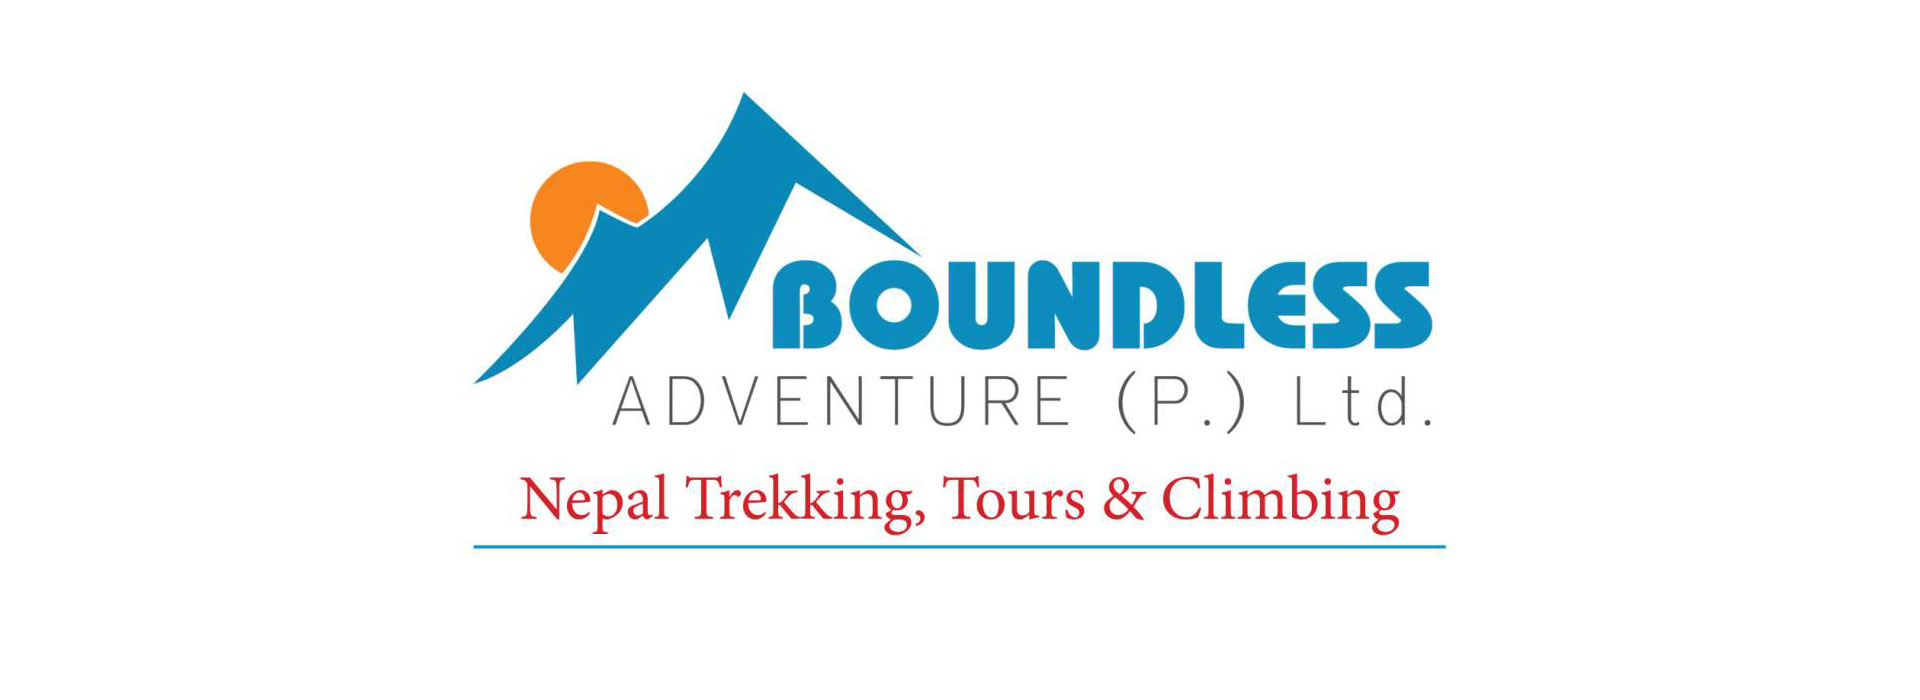 Why Boundless Adventure